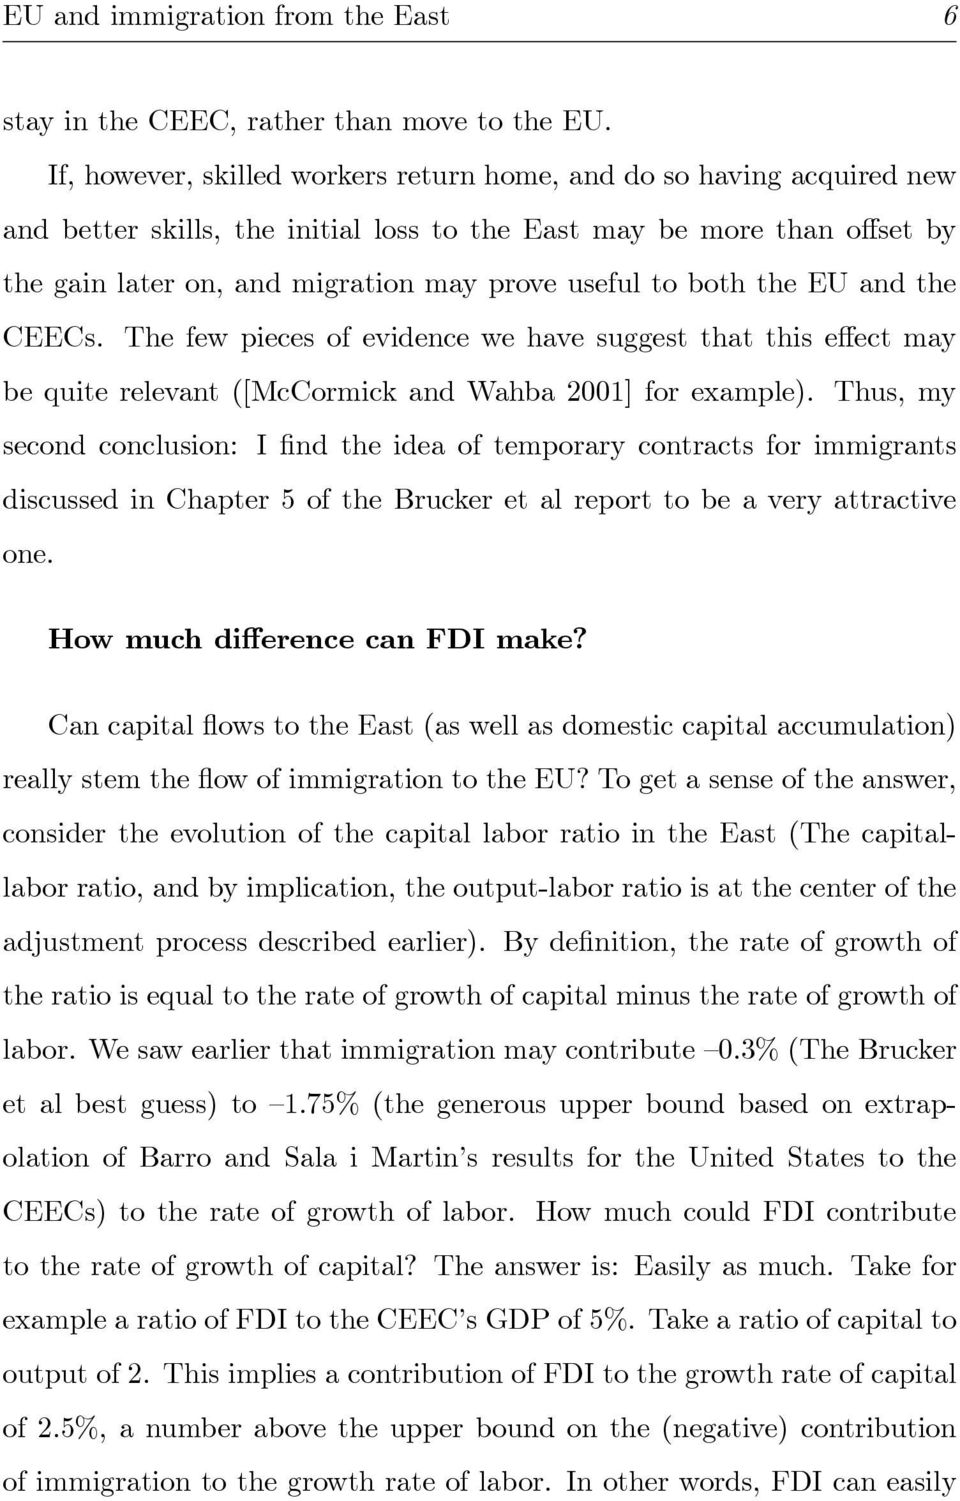 both the EU and the CEECs. The few pieces of evidence we have suggest that this effect may be quite relevant ([McCormick and Wahba 2001] for example).